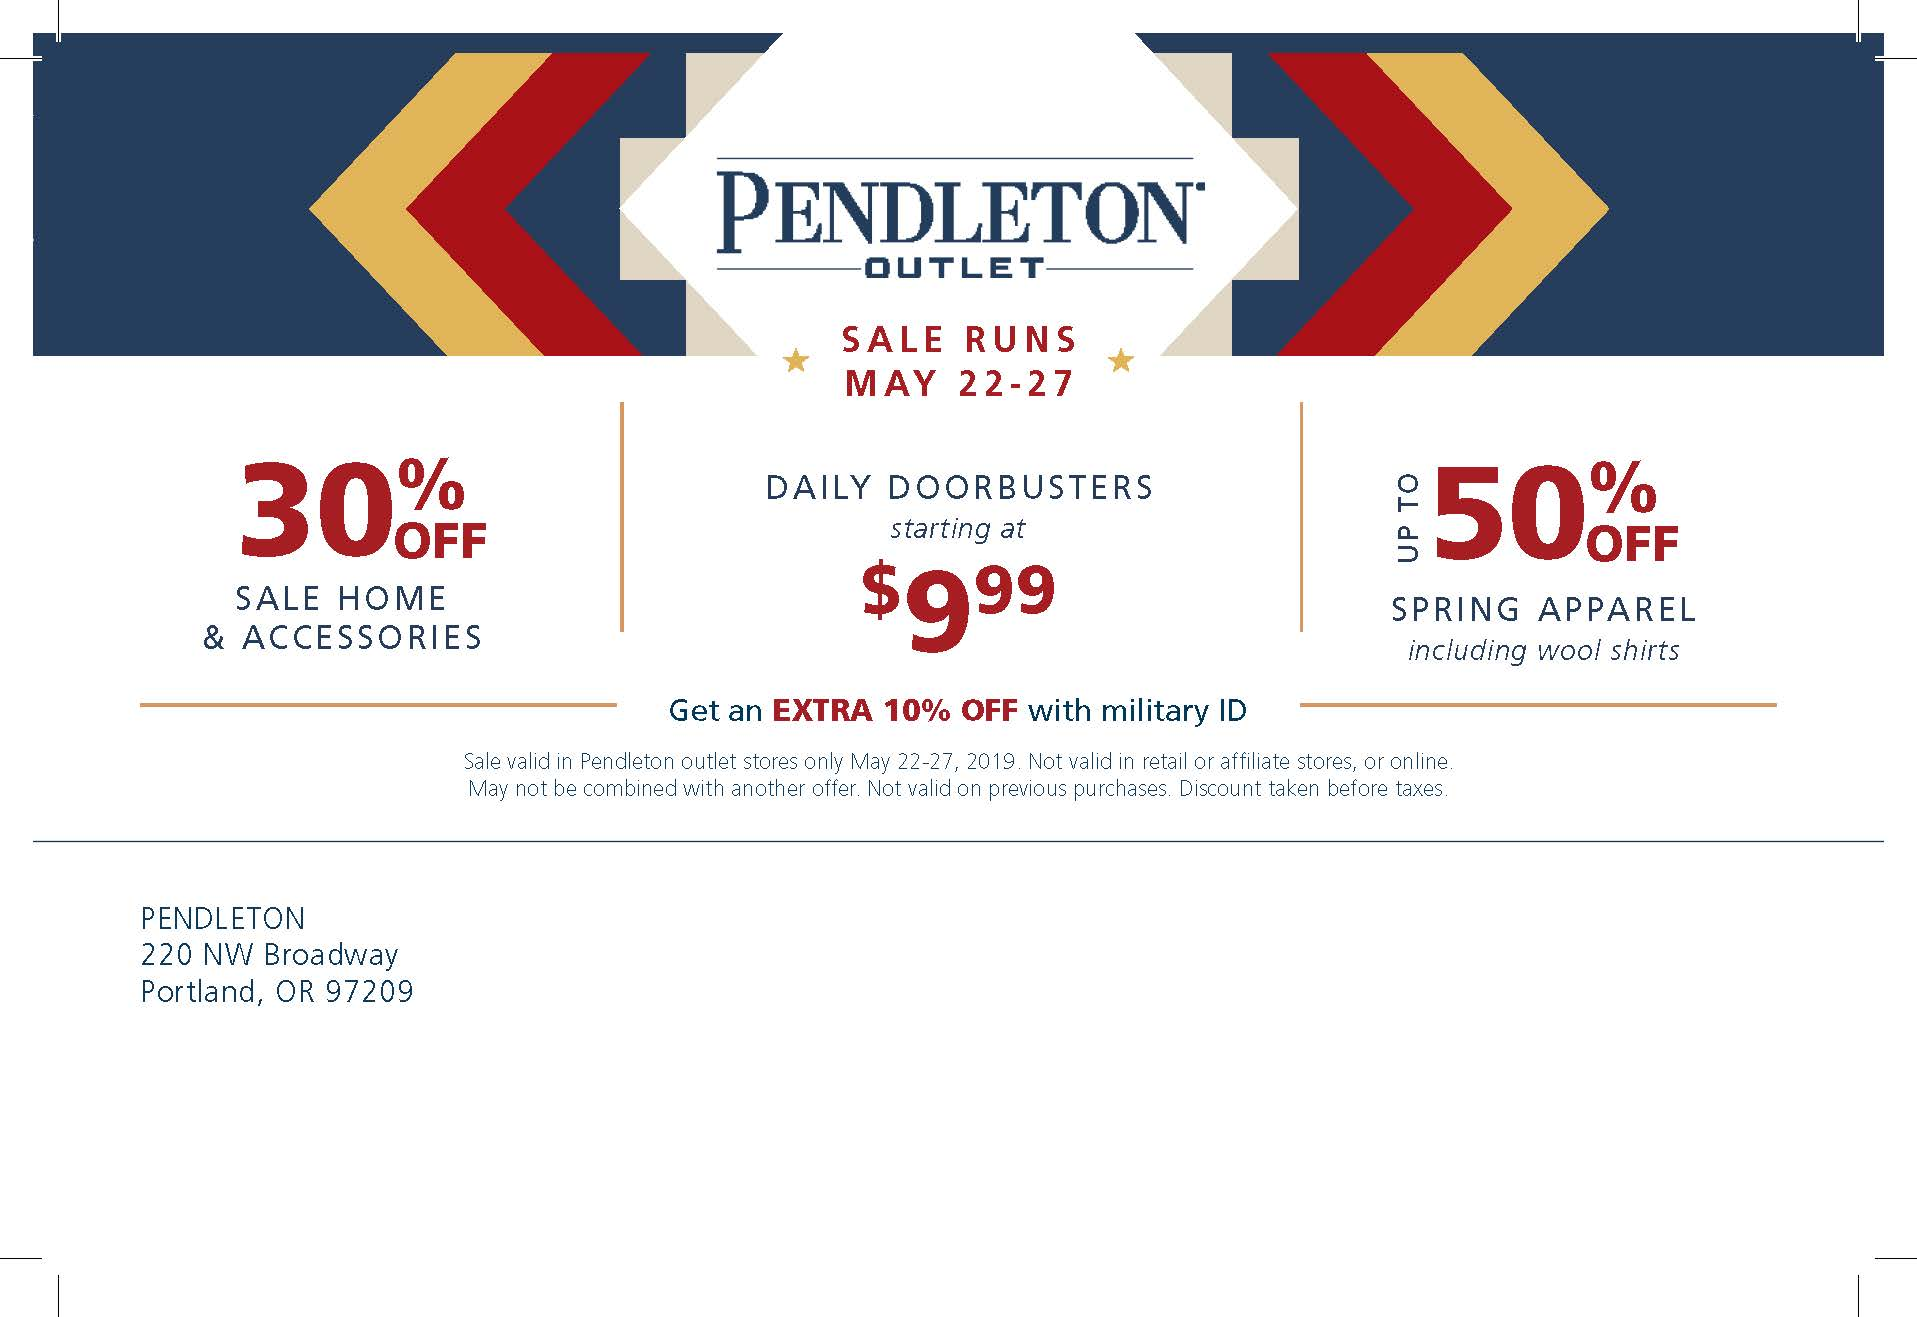 2019_Memorial_Sale_Outlet_PC_Page_2.jpg